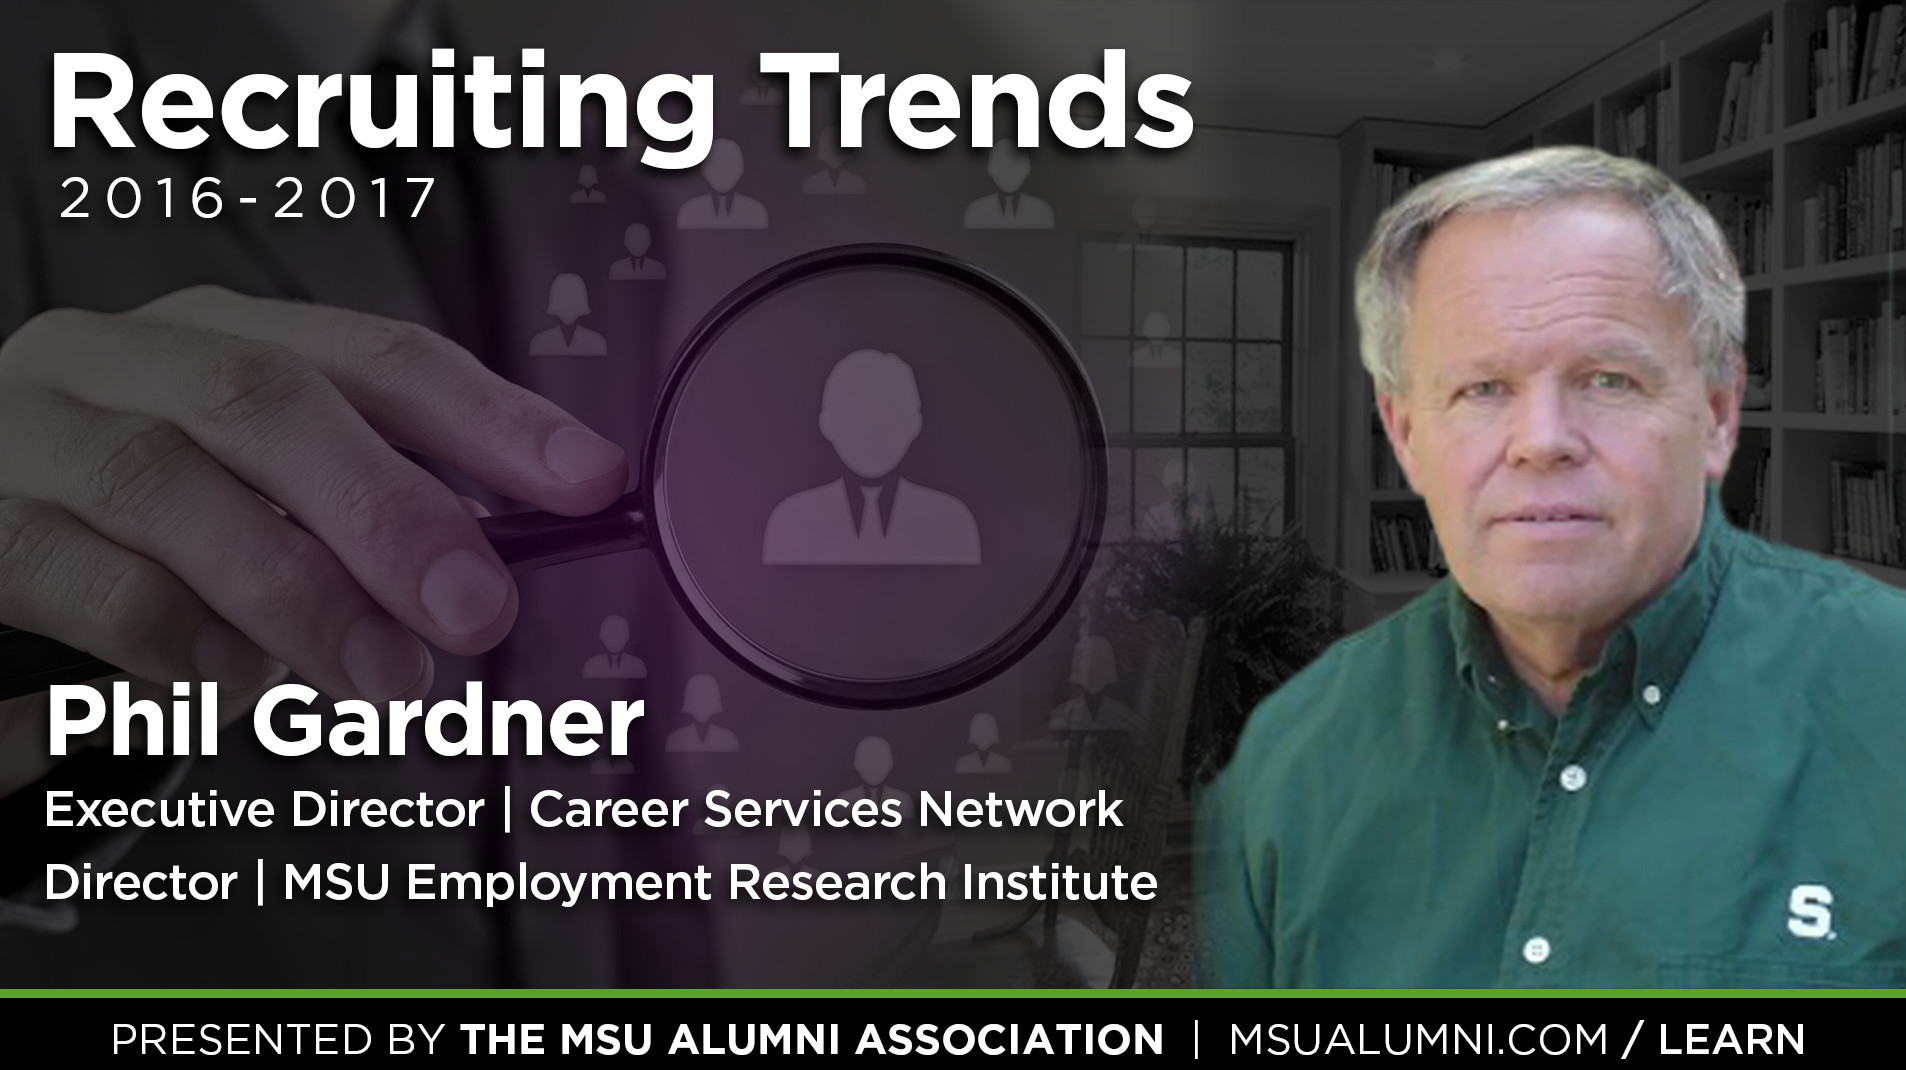 livestream cover image for Phil Gardner | Recruiting Trends